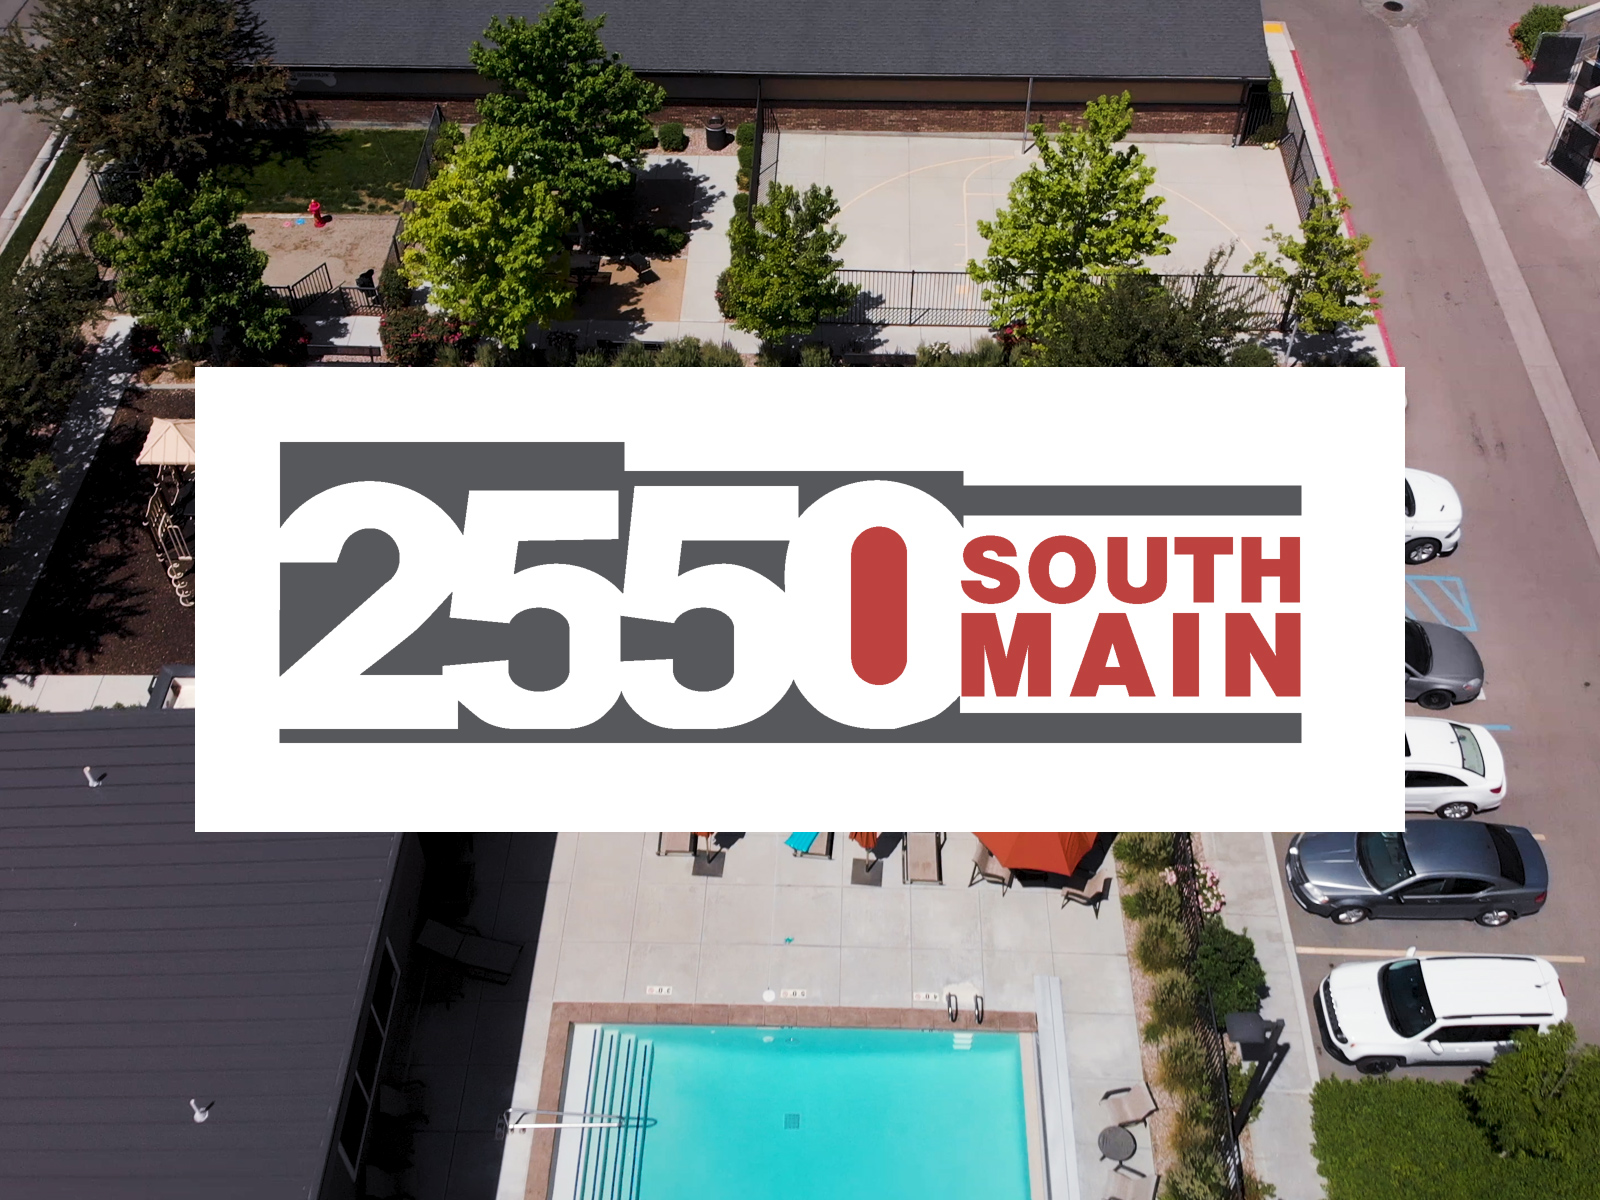 Come home to the Salt Lake Apartments you have been waiting for at 2550 South Main. Take a video tour of our thriving community, and join 2250 South Main today.